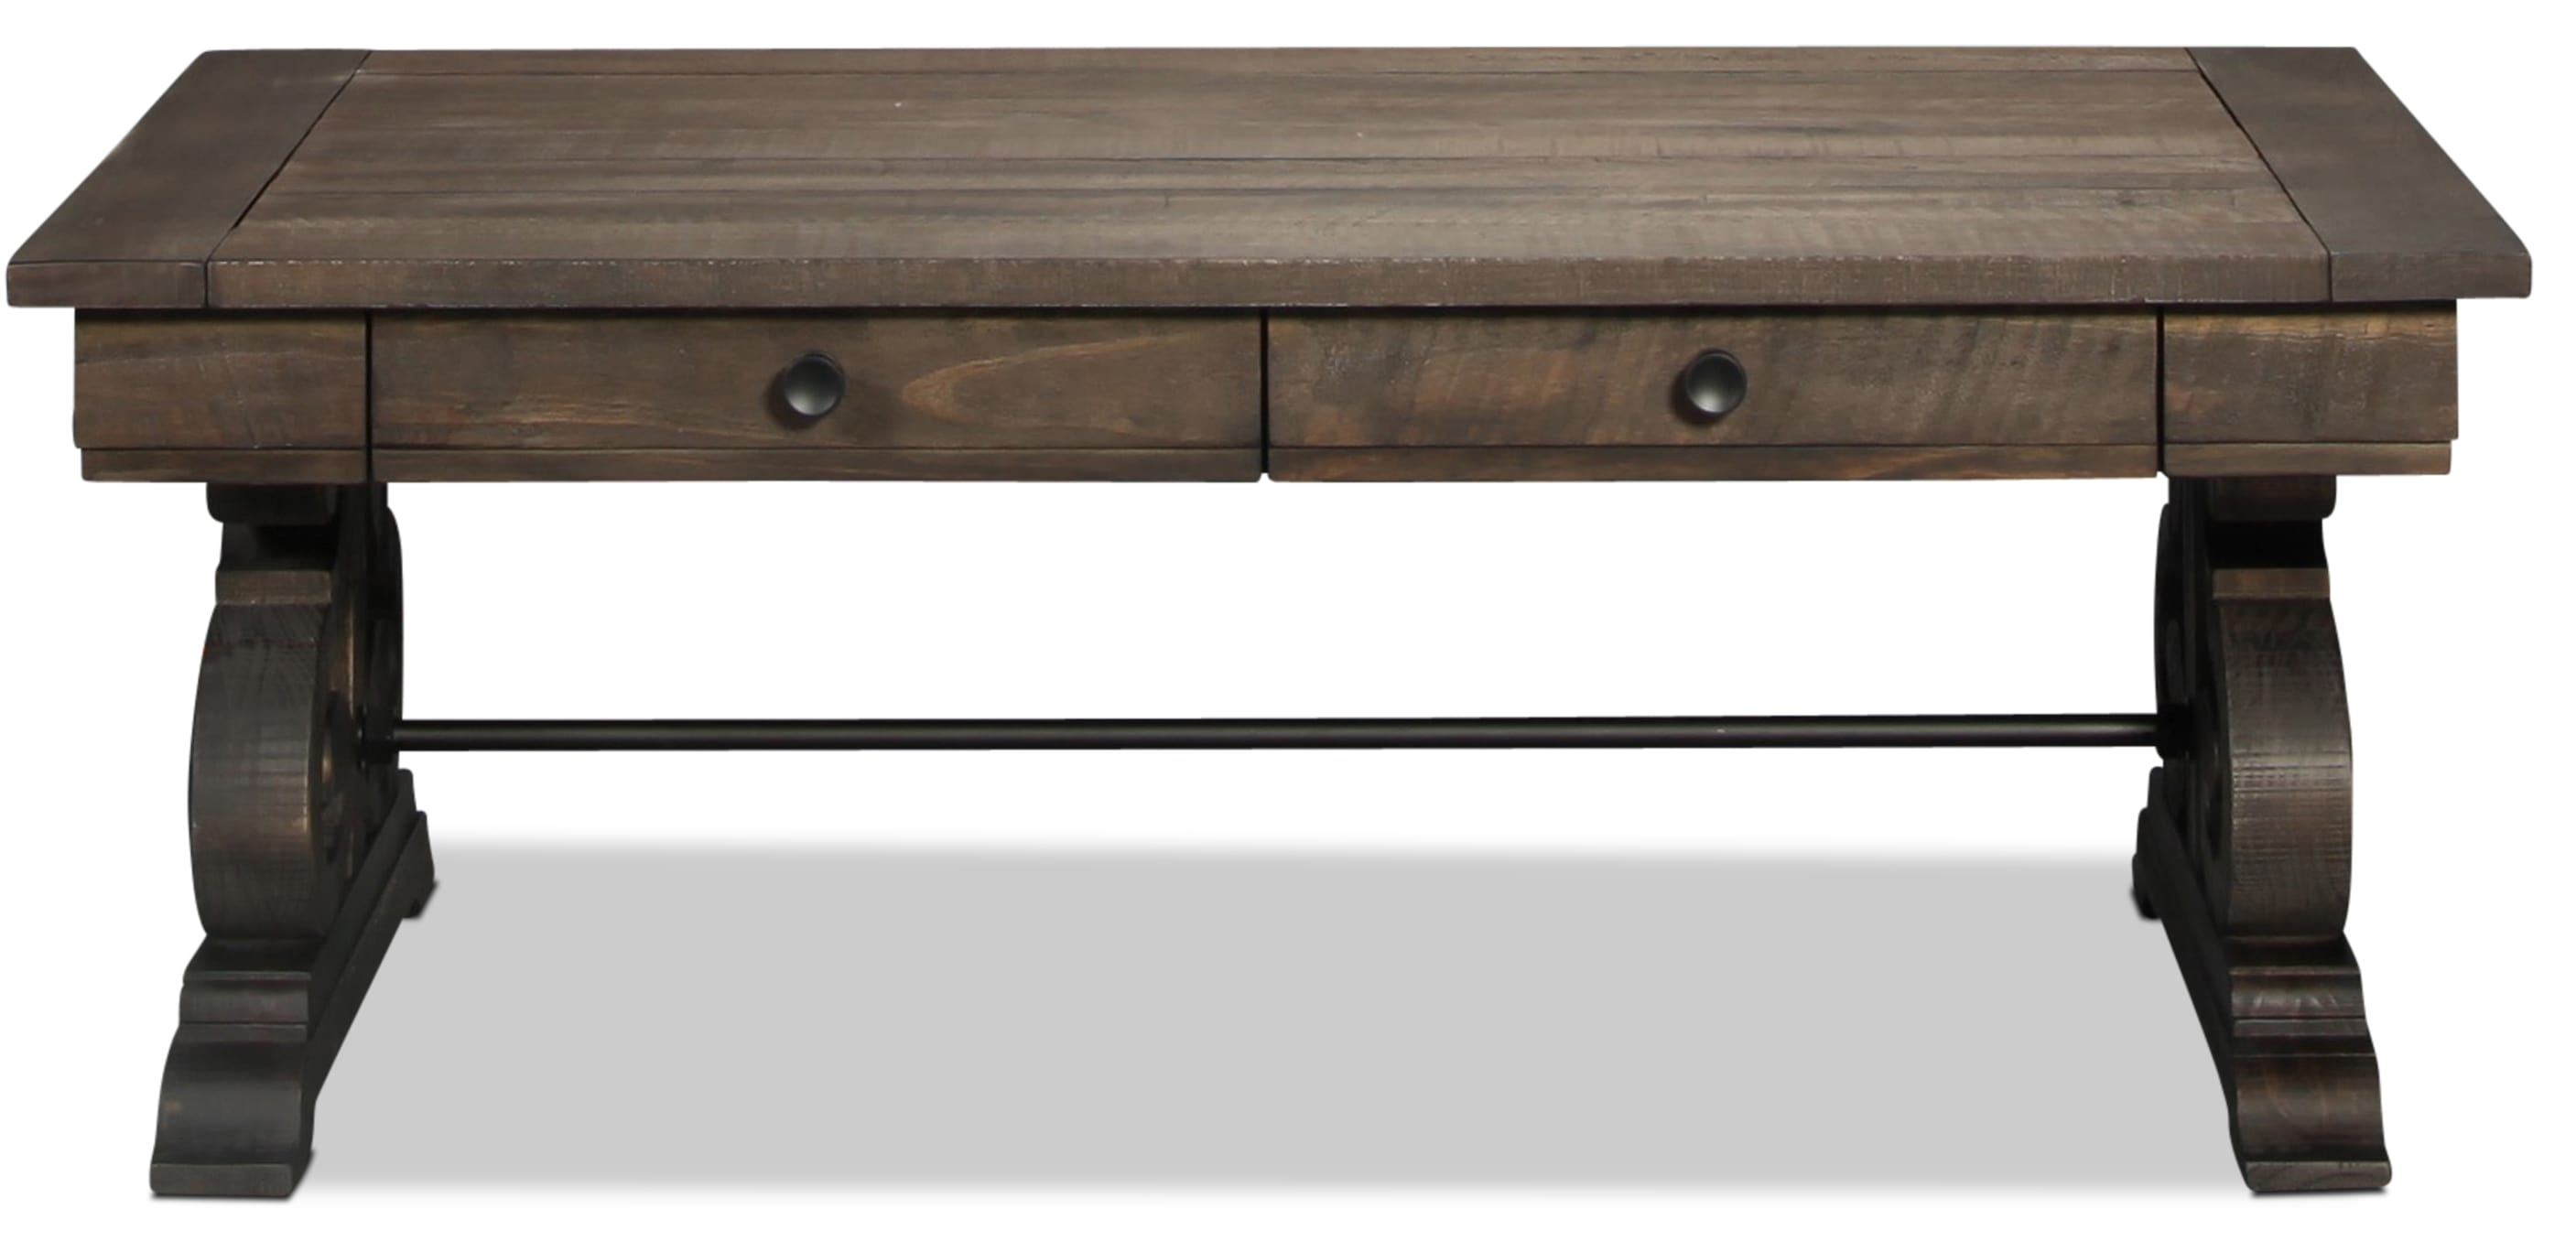 Bellamy Coffee Table - Weathered Pine